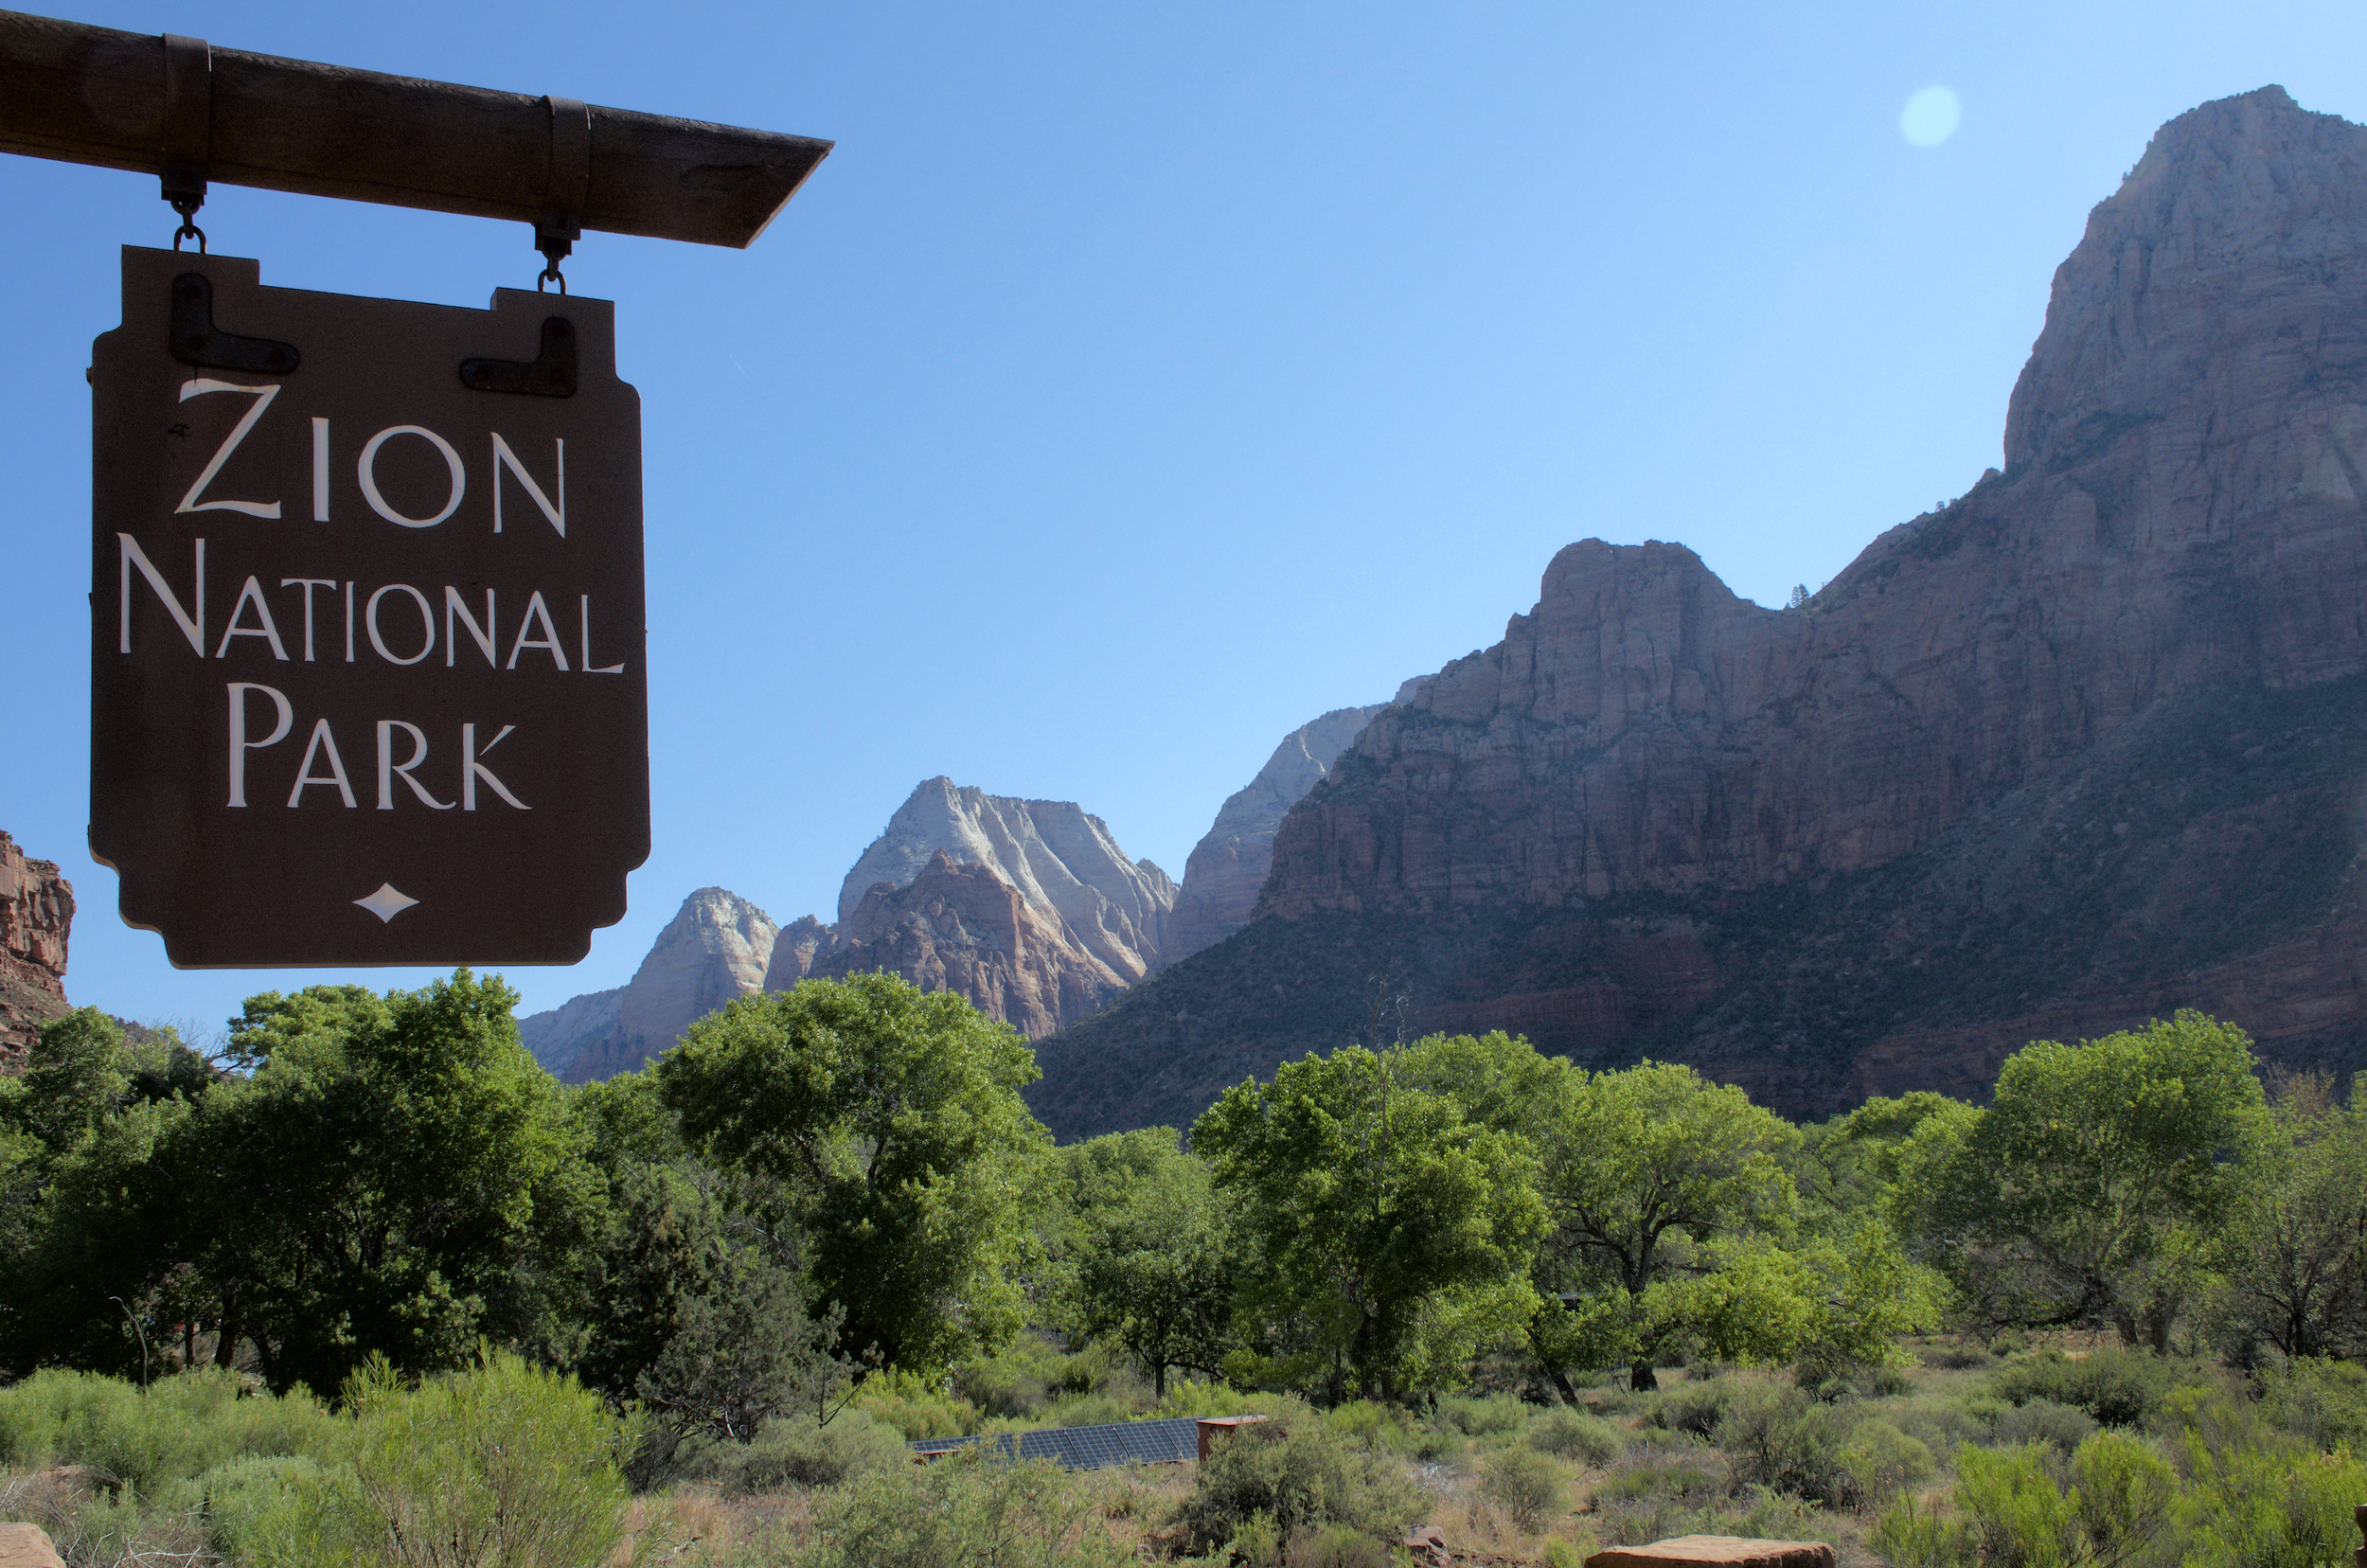 zion national park utah thisworldexists this world exists